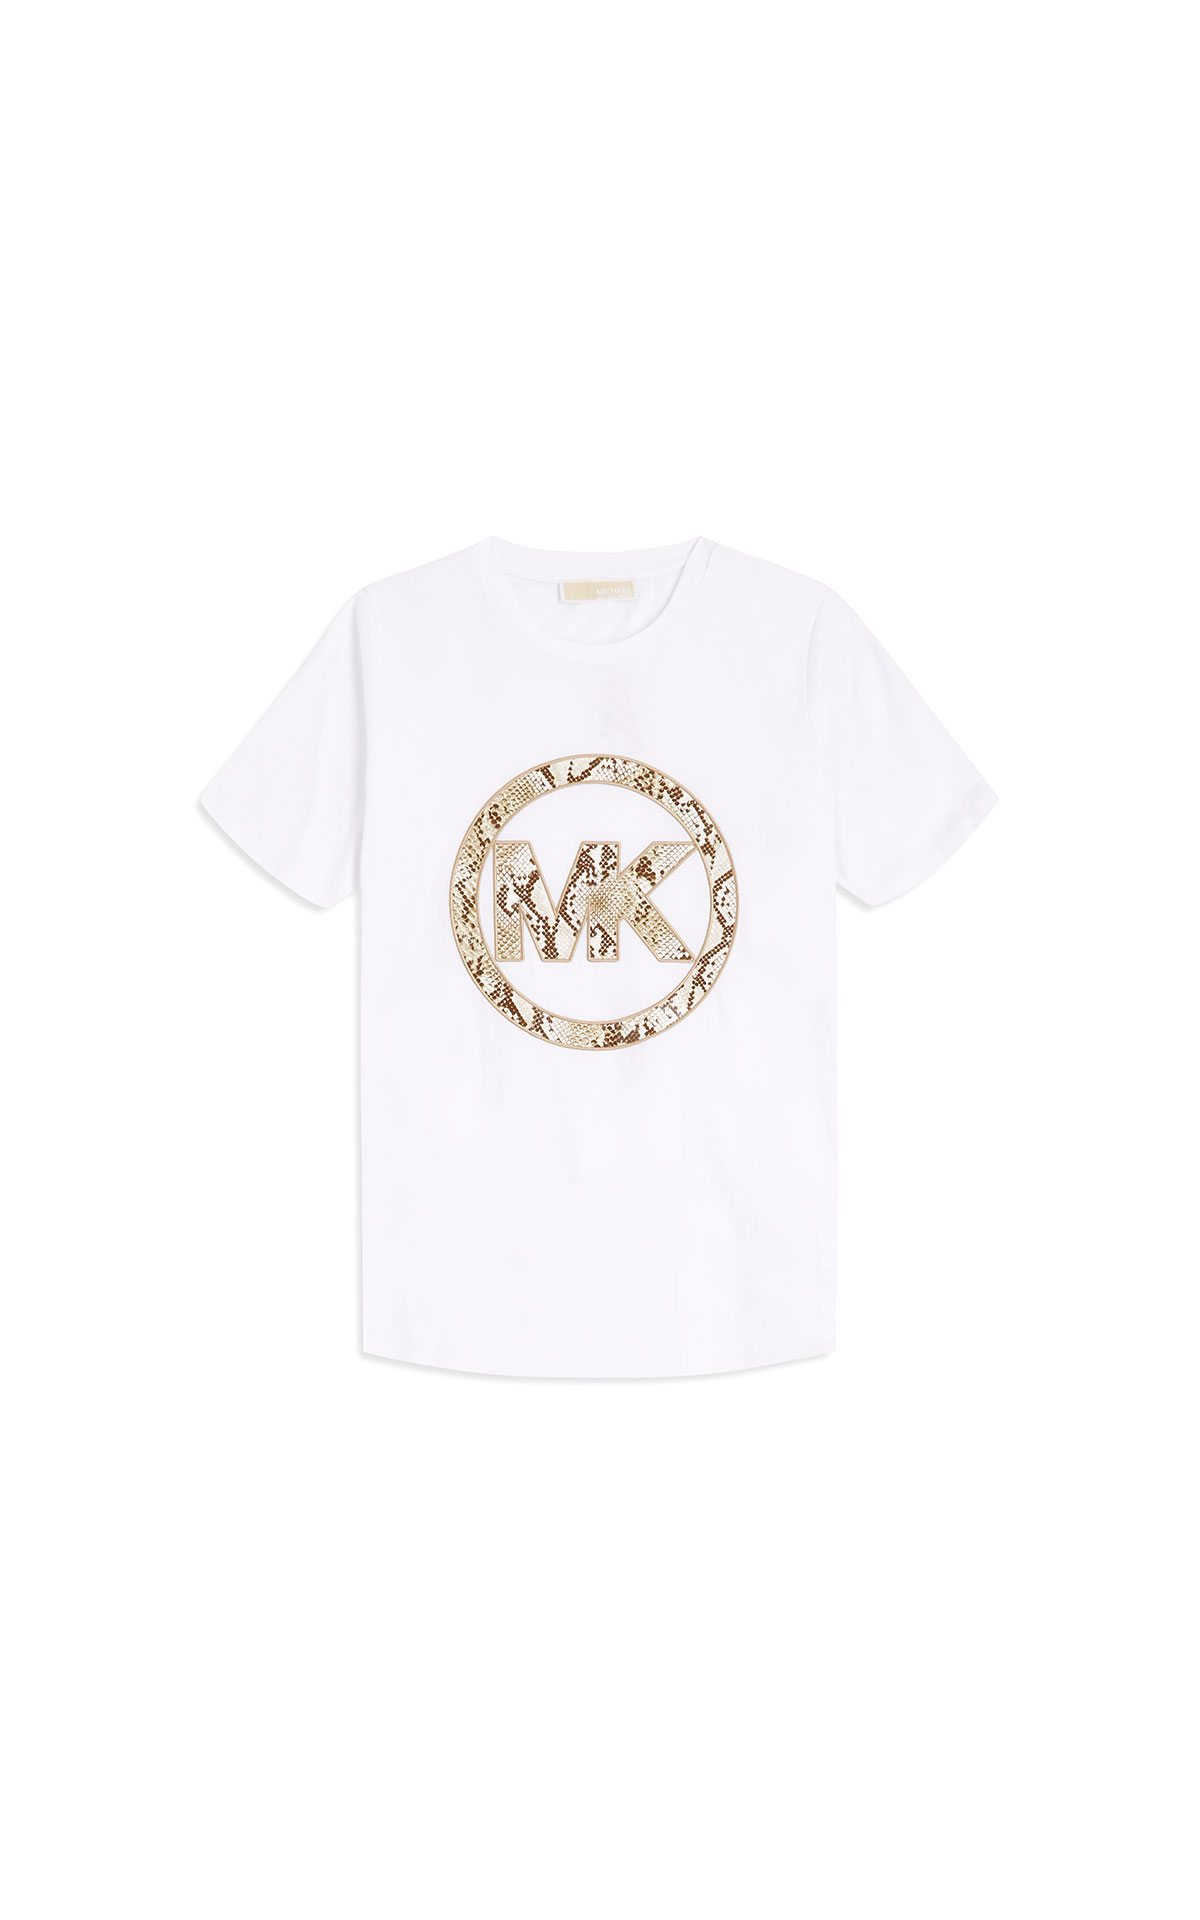 Michael Kors snake logo tee-shirt at The Bicester Village Shopping Collection